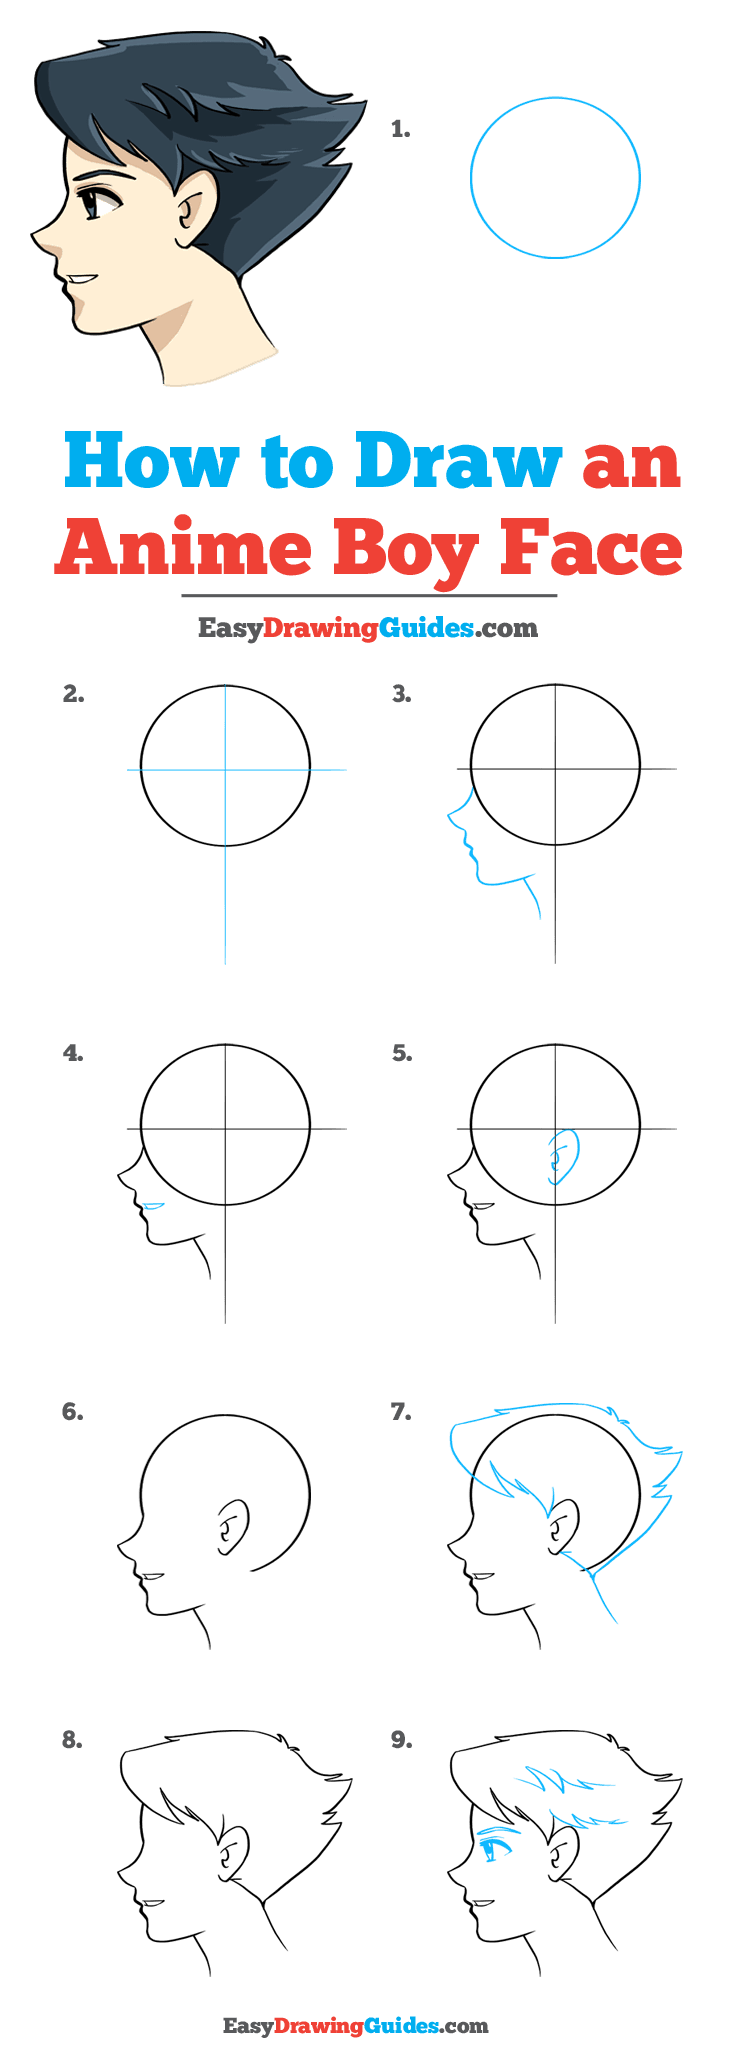 How to Draw Anime Boy Face